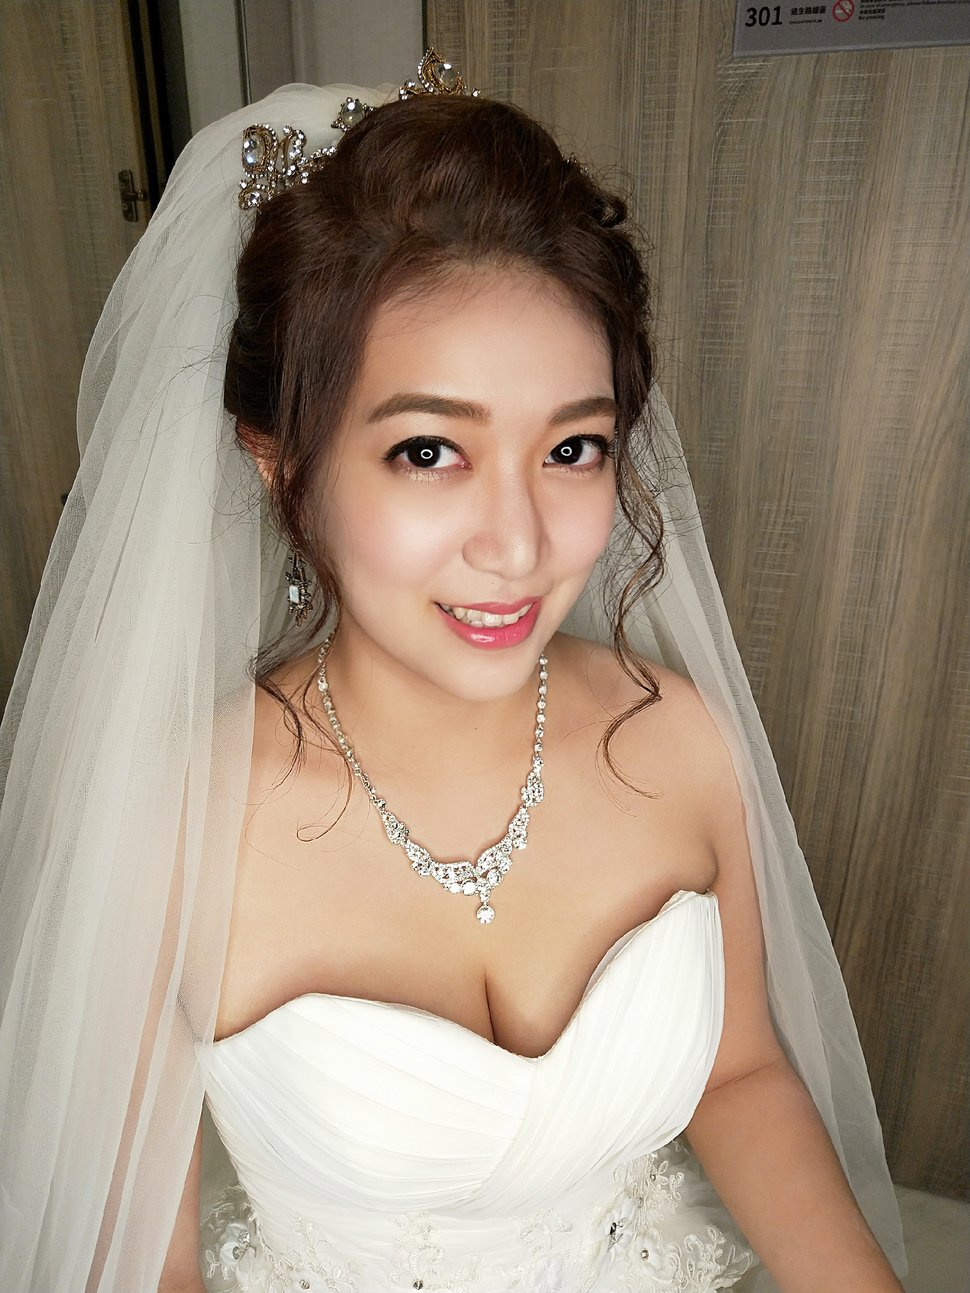 IMG20181201080902_mr1543630678401 - Elaine makeup《結婚吧》